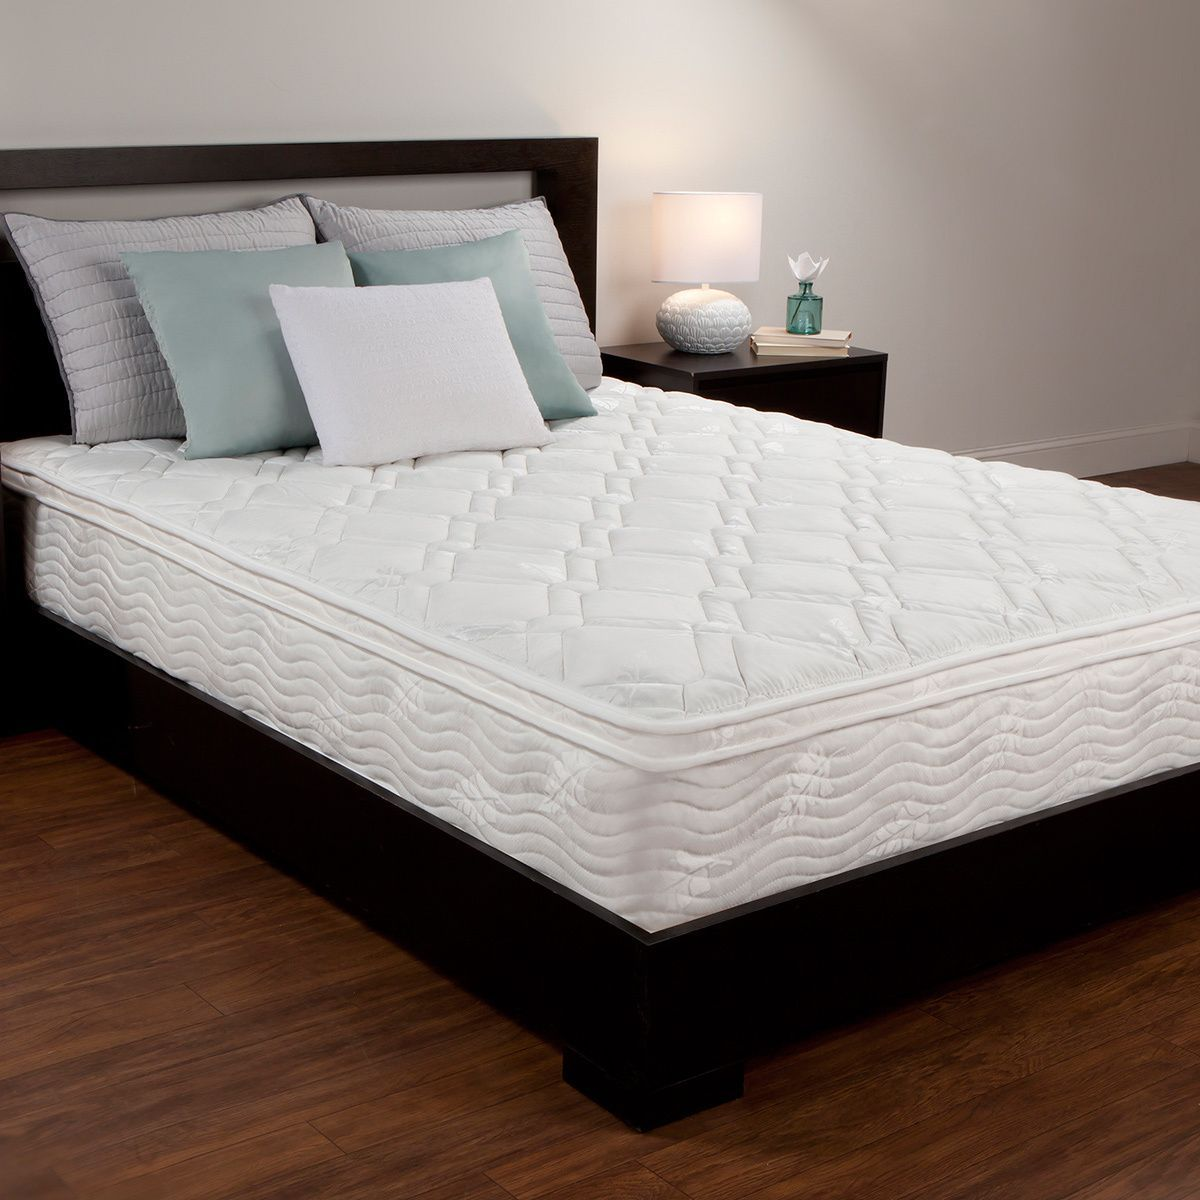 Product Reviews Comfort Memories 10 Inch Full Size Foam And Spring Hybrid Mattress Queen Mattress Size Mattress Bedroom Furniture Stores